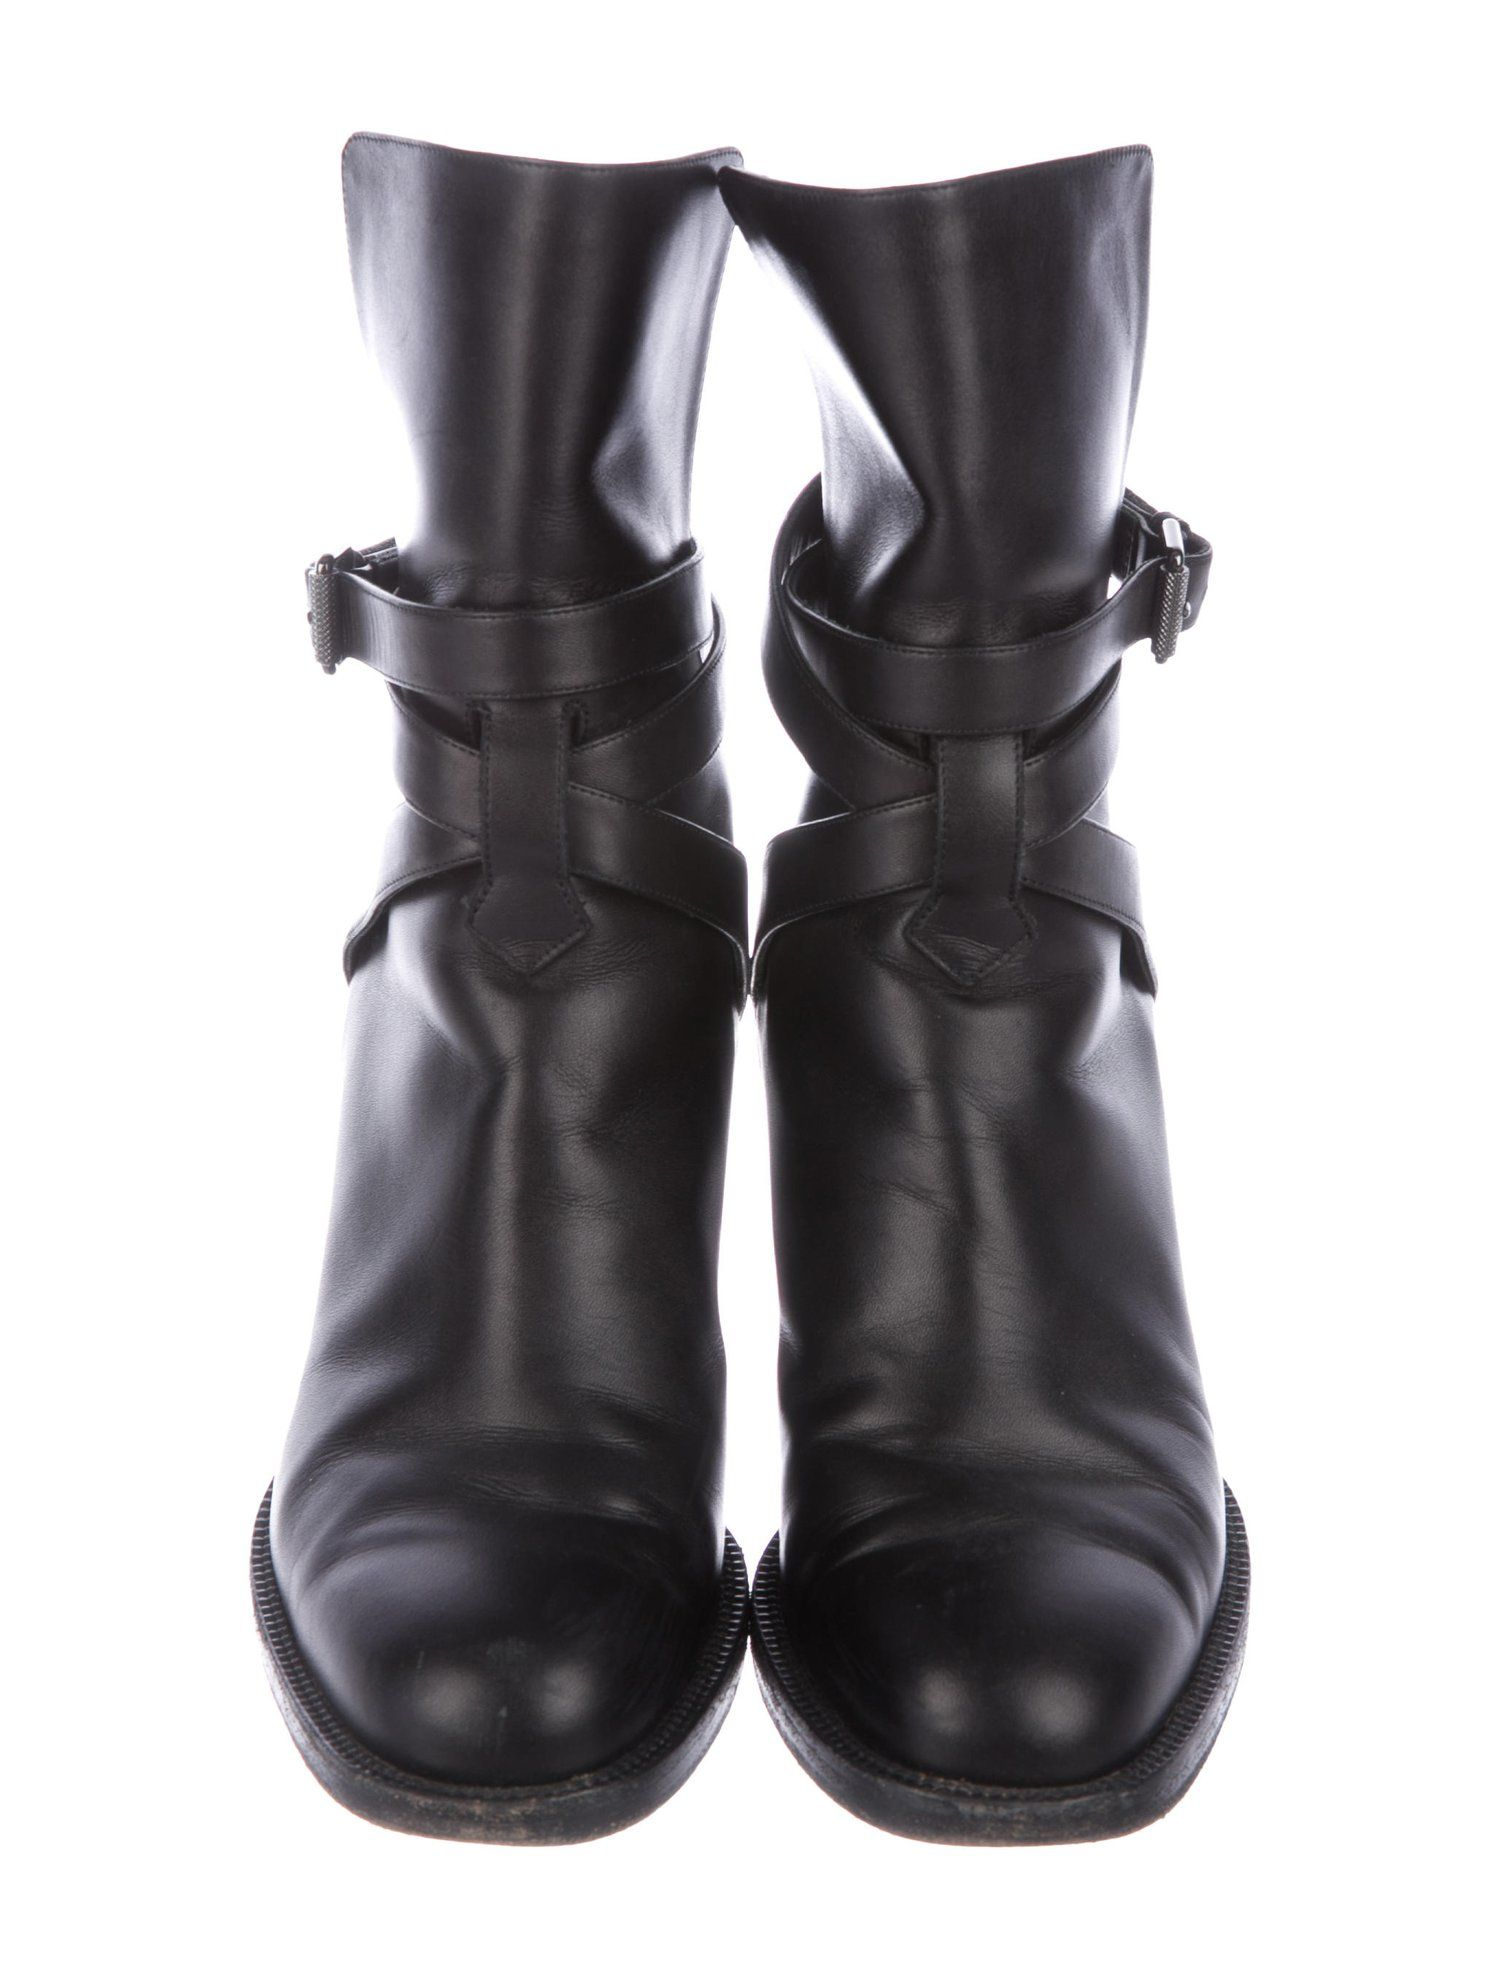 100% authentic d4eb1 69b70 Christian Louboutin Karistrap Leather Boots #SPONSORED ...